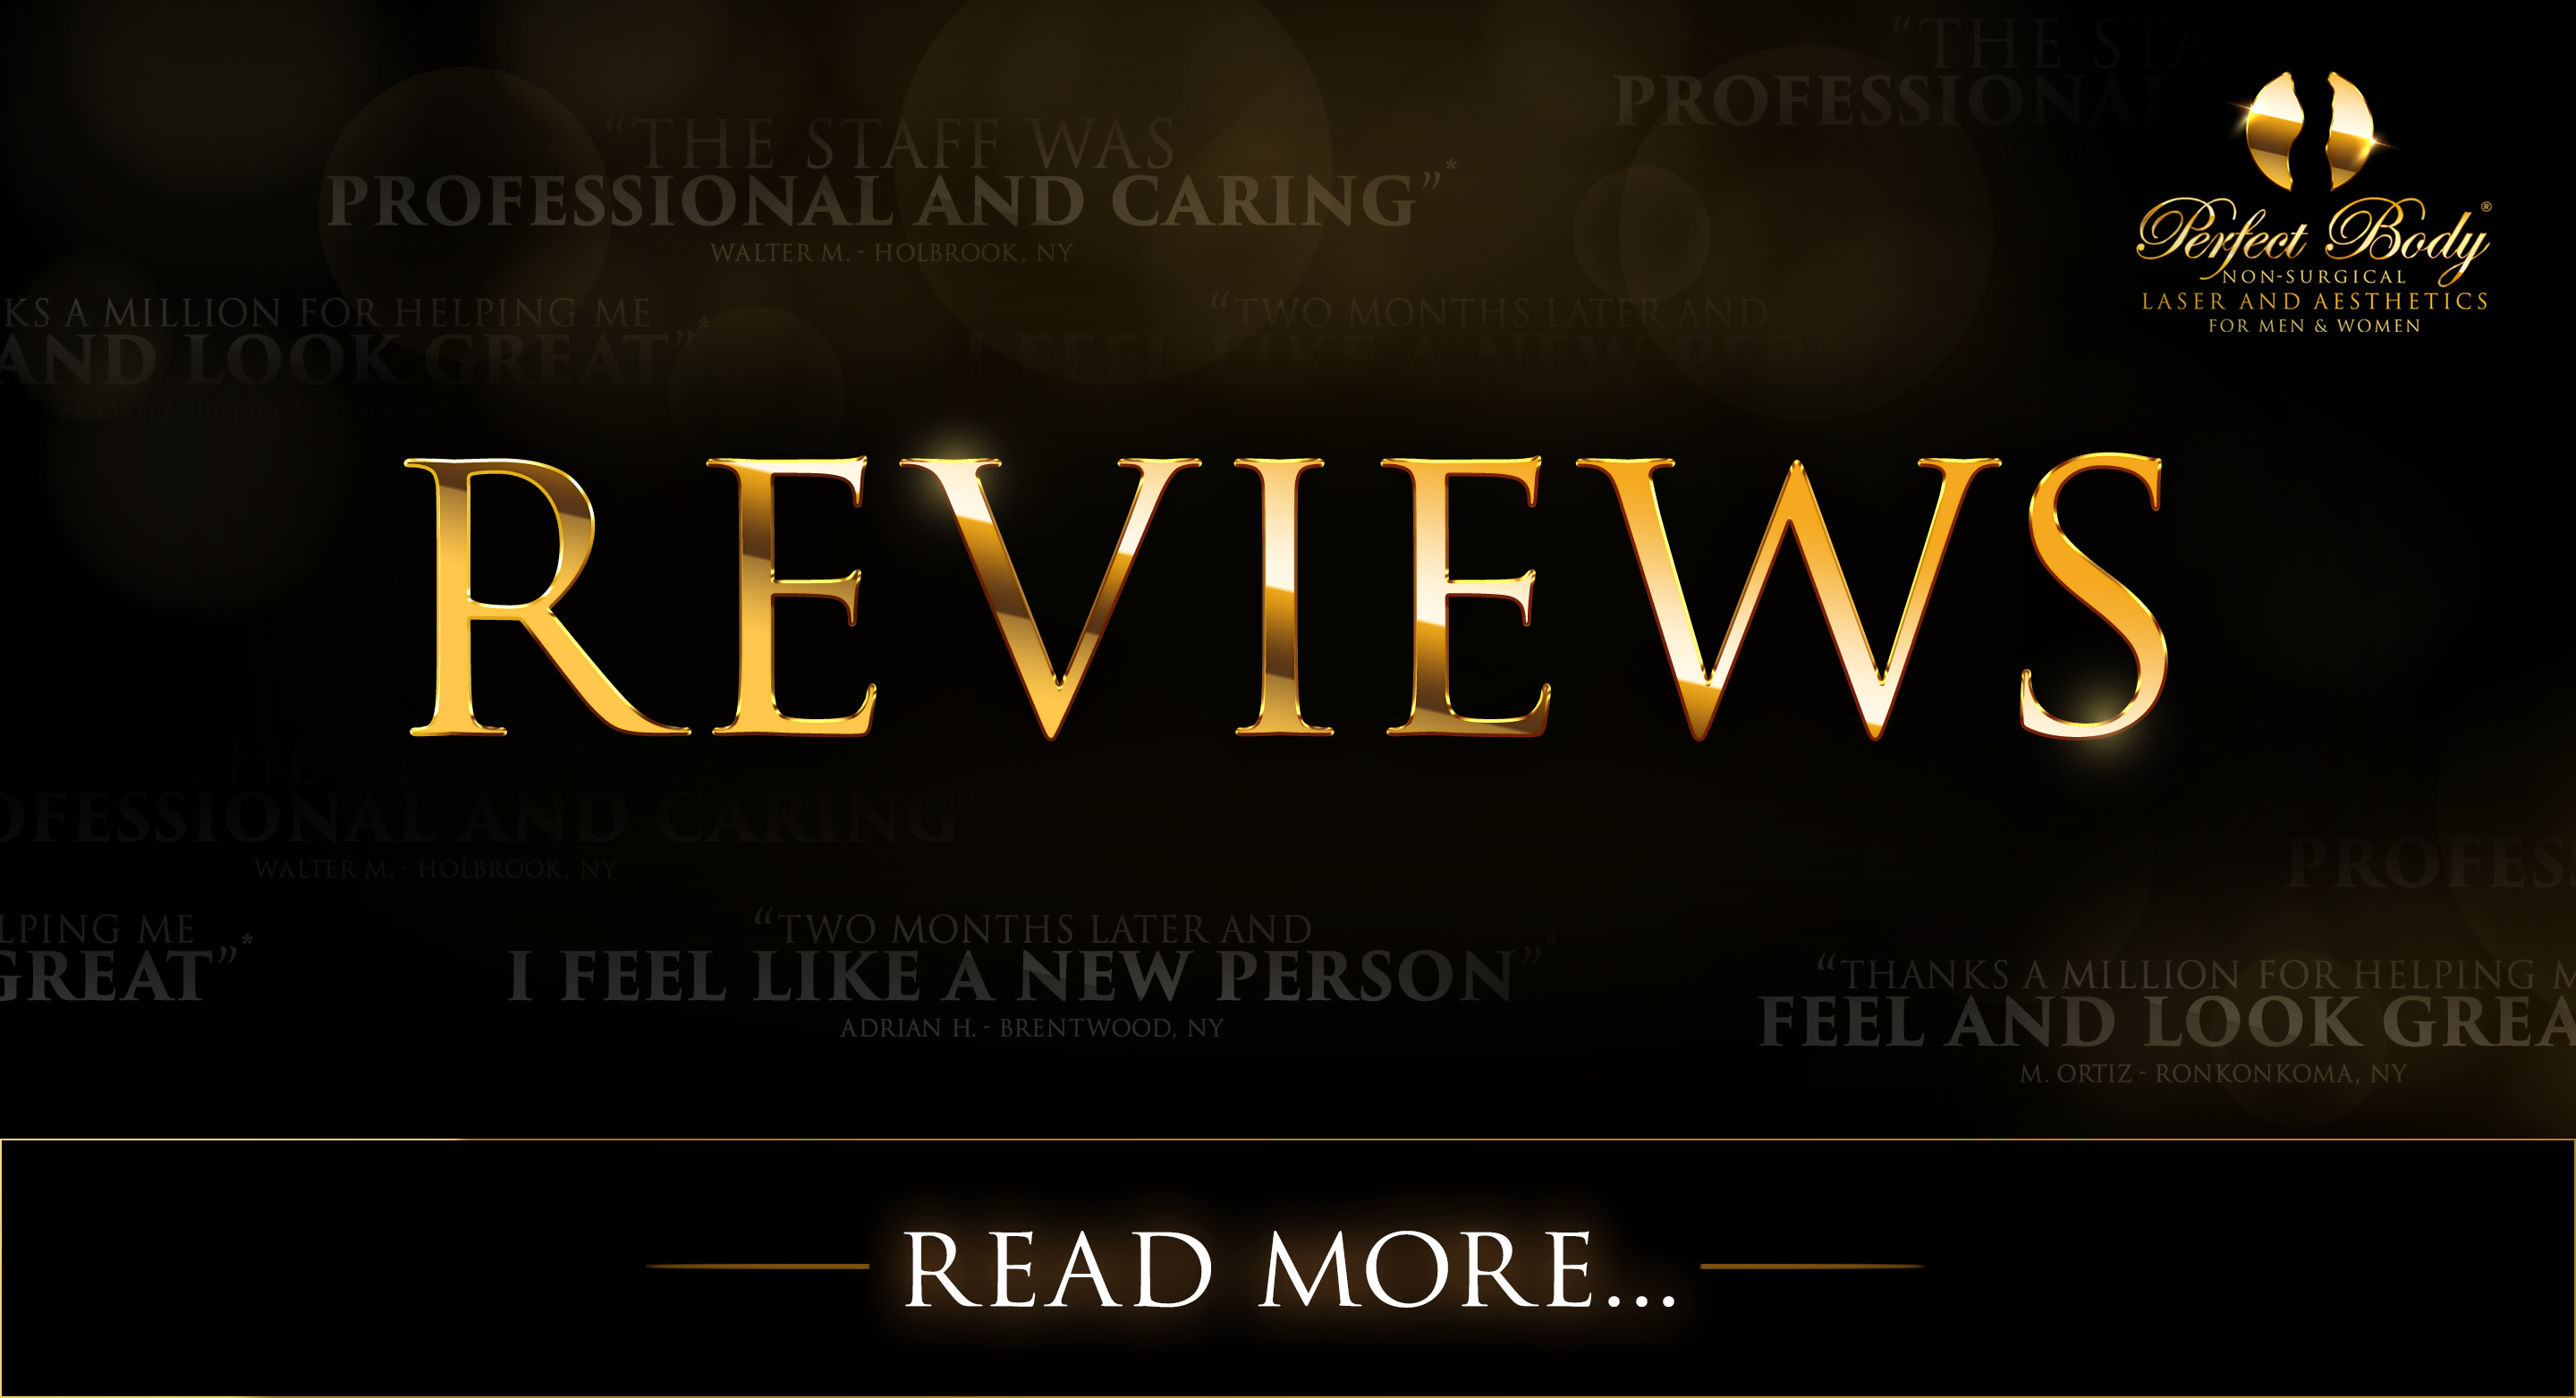 Perfect Body Laser and Aesthetics Reviews